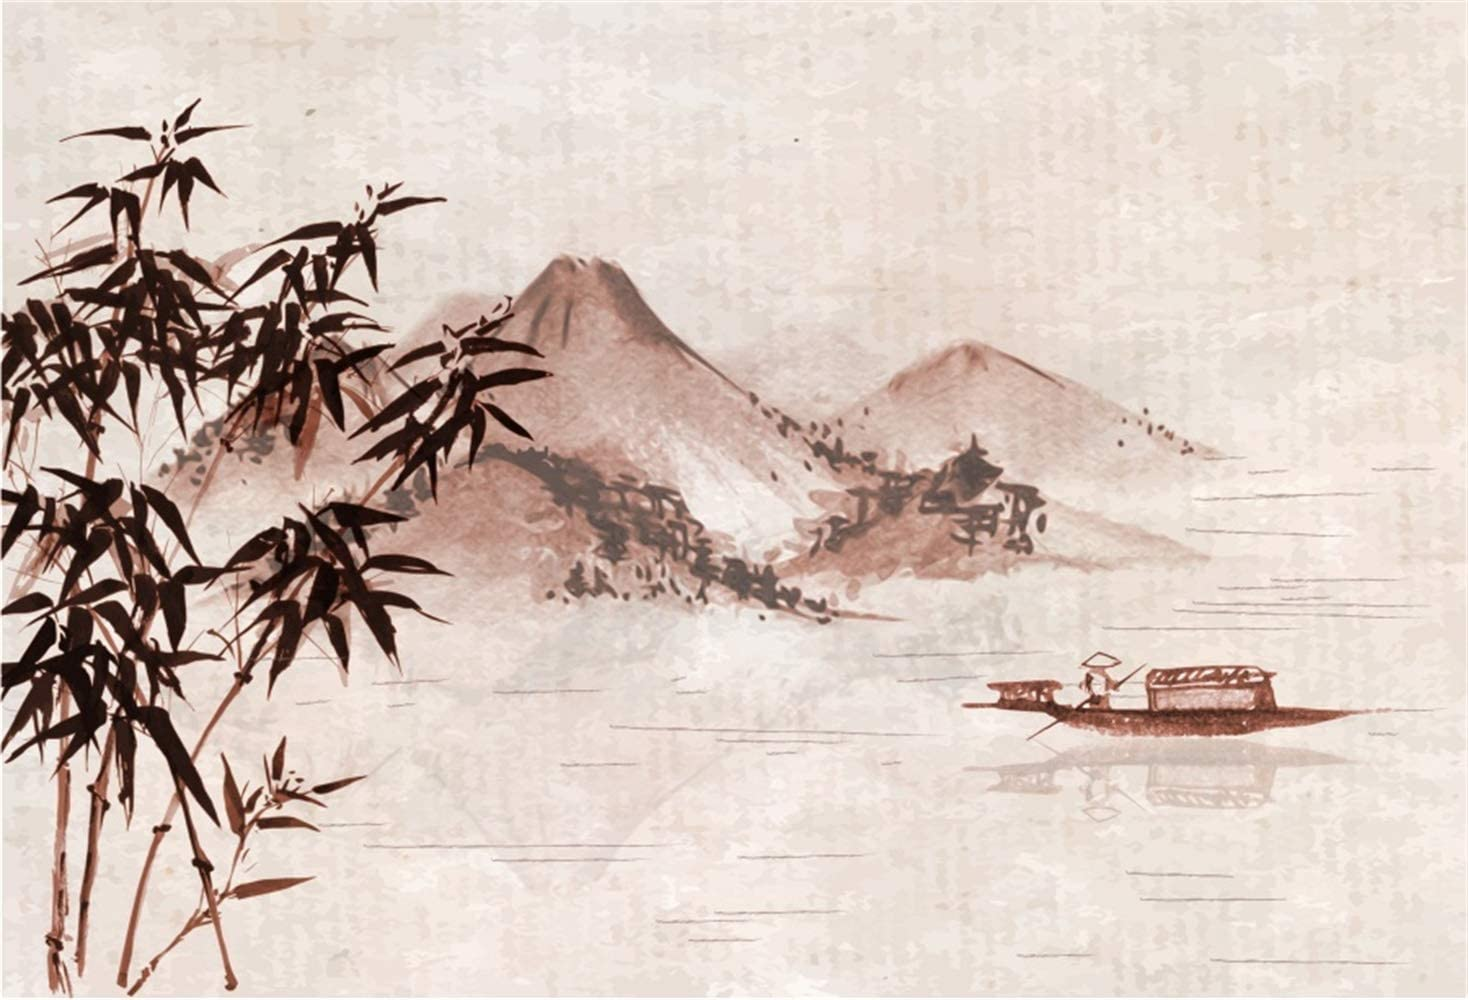 10x6.5ft Vintage Chinese Style Painting Background Bamboo Mountains Fisherman Boat River Polyester Photography Backdrop Children Adults Personal Portraits Shoot Wallpaper Photo Studio